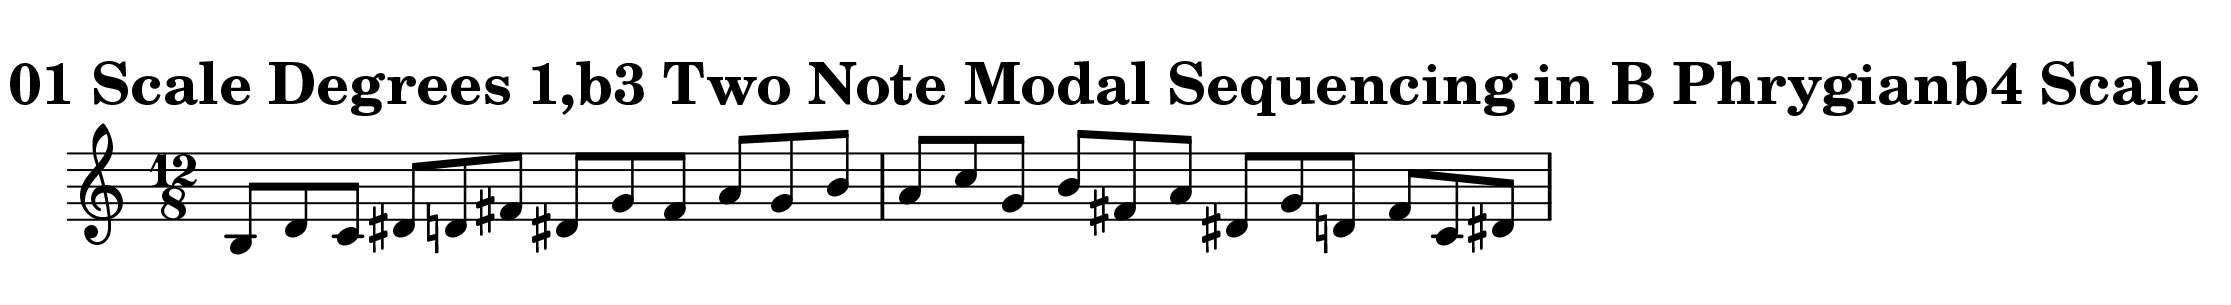 B Phrygian b4 Scale Modal Sequencing 2 Note Group 3 for all instrumentalist by Bruce Arnold for Muse Eek Publishing Company